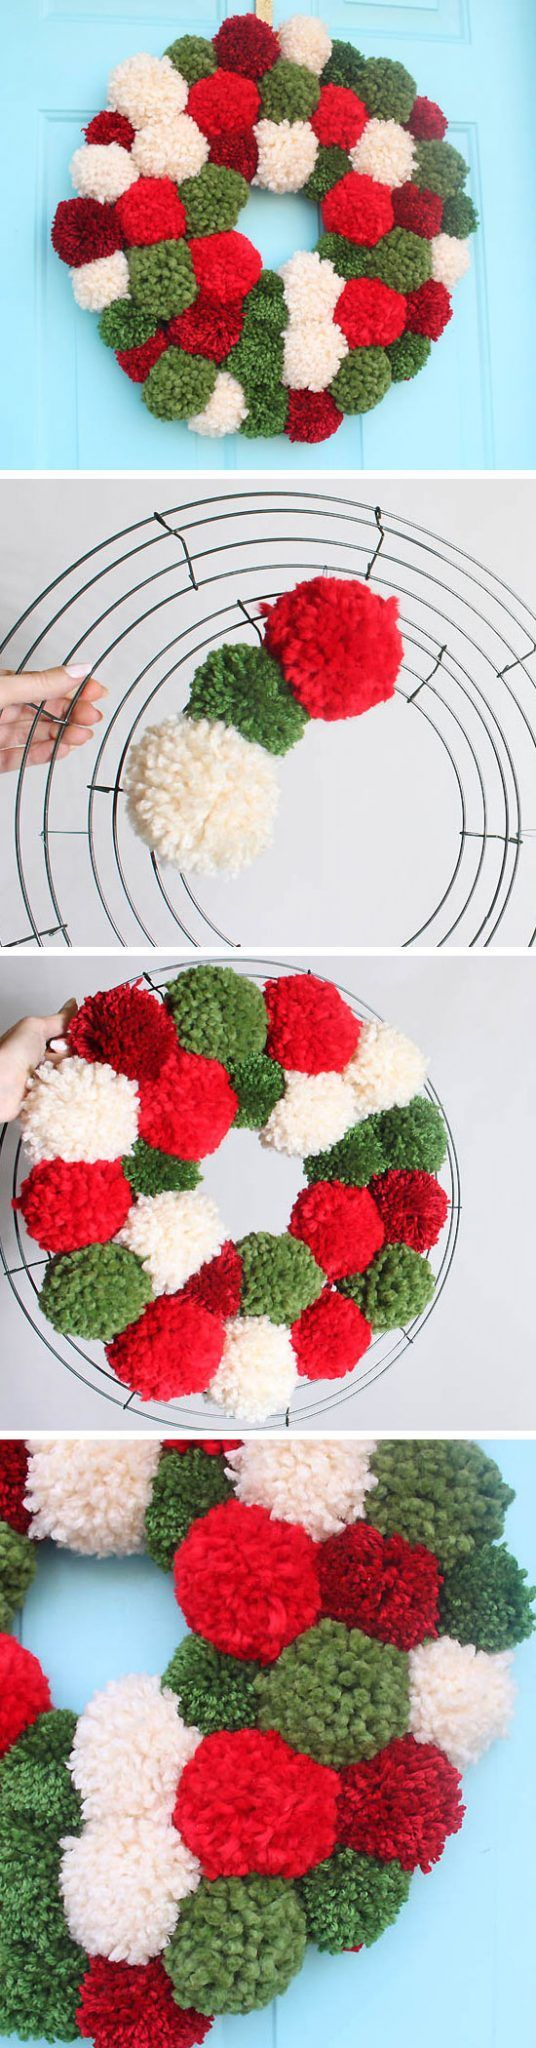 DIY Anthropologie Pom Pom Wreath | Click Pic for 20 DIY Christmas Wreaths for Front Door | Easy Christmas Decor Ideas for the Home